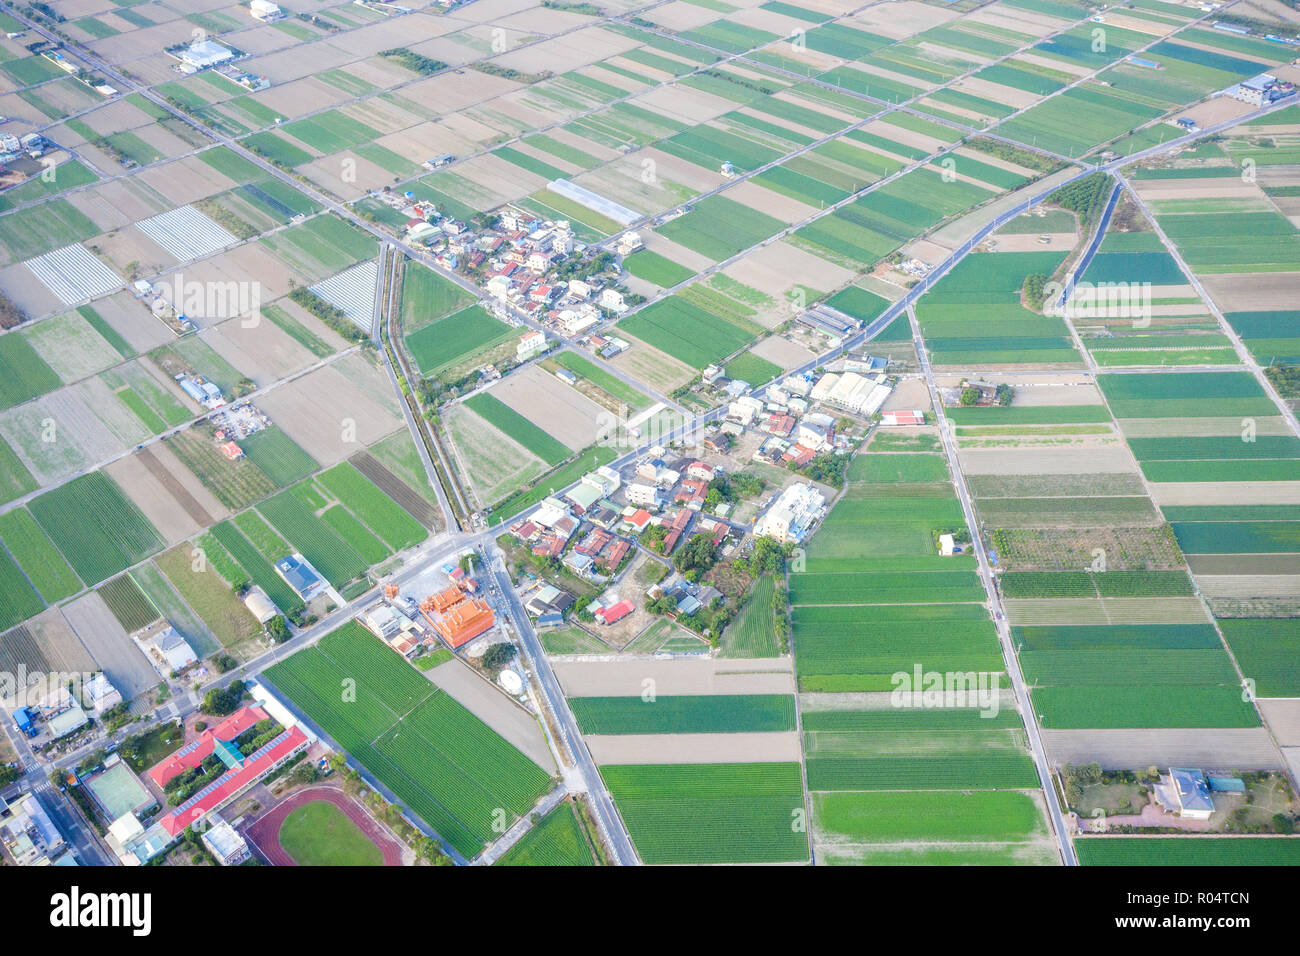 Fields with various types of agriculture and villages beside with